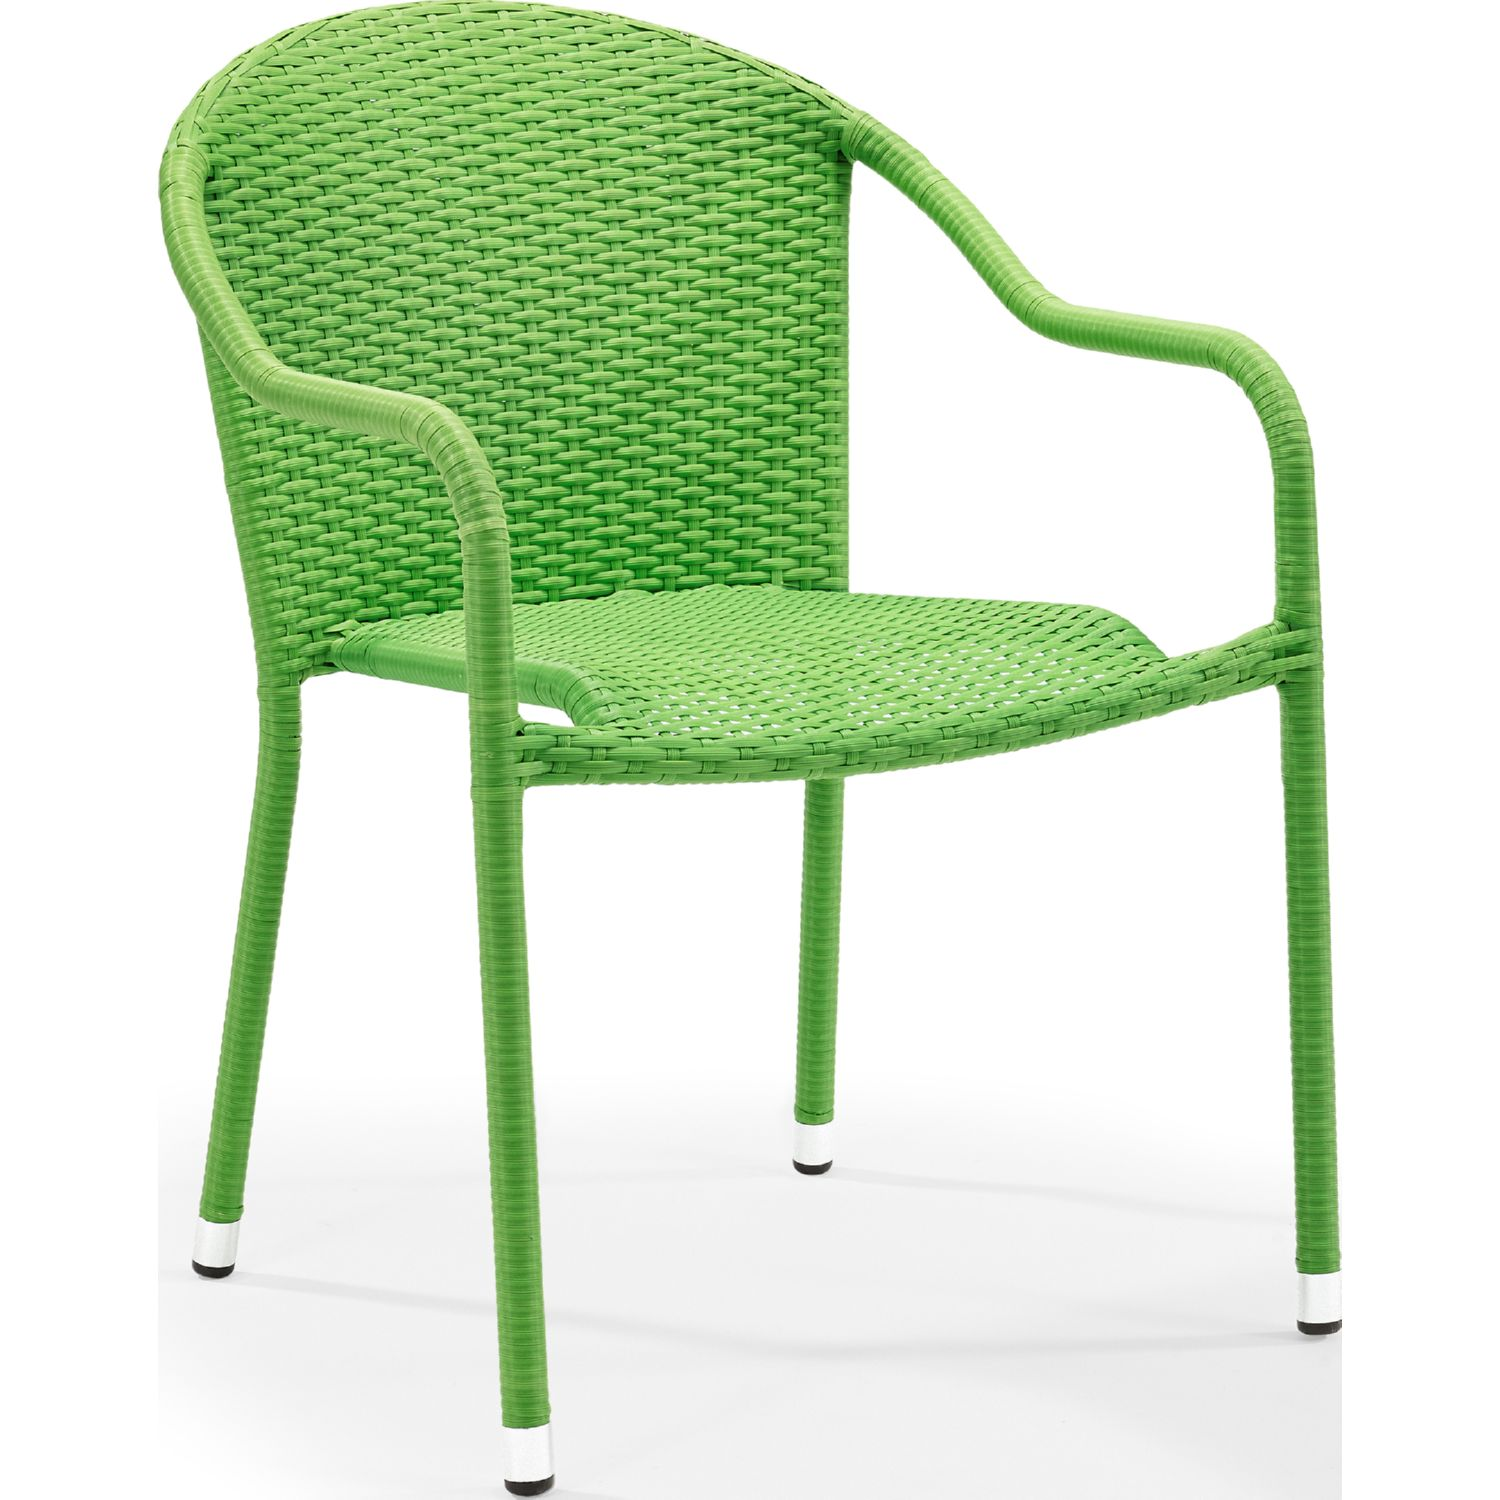 Palm Harbor Outdoor Wicker Stackable Dining Arm Chairs In